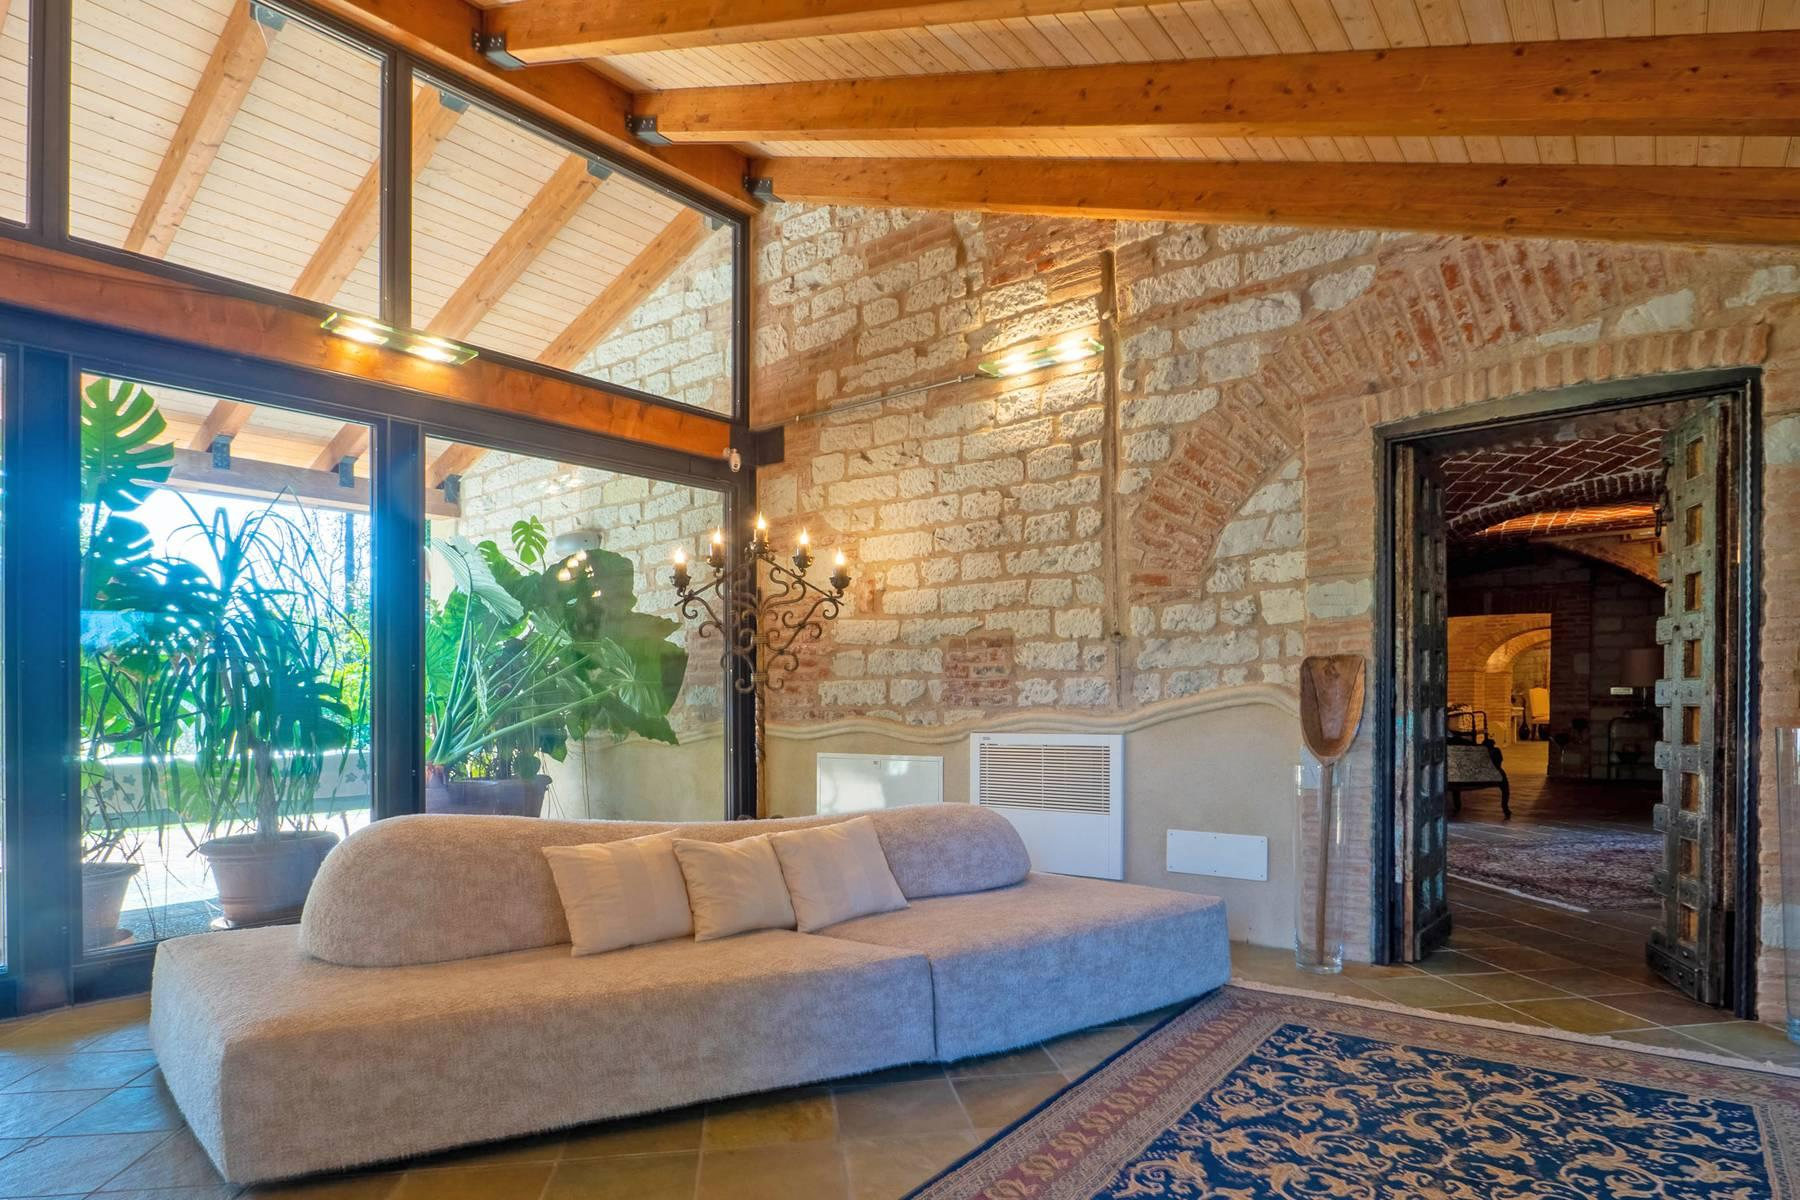 Refined farmhouse nestled in the hills of Monferrato - 6